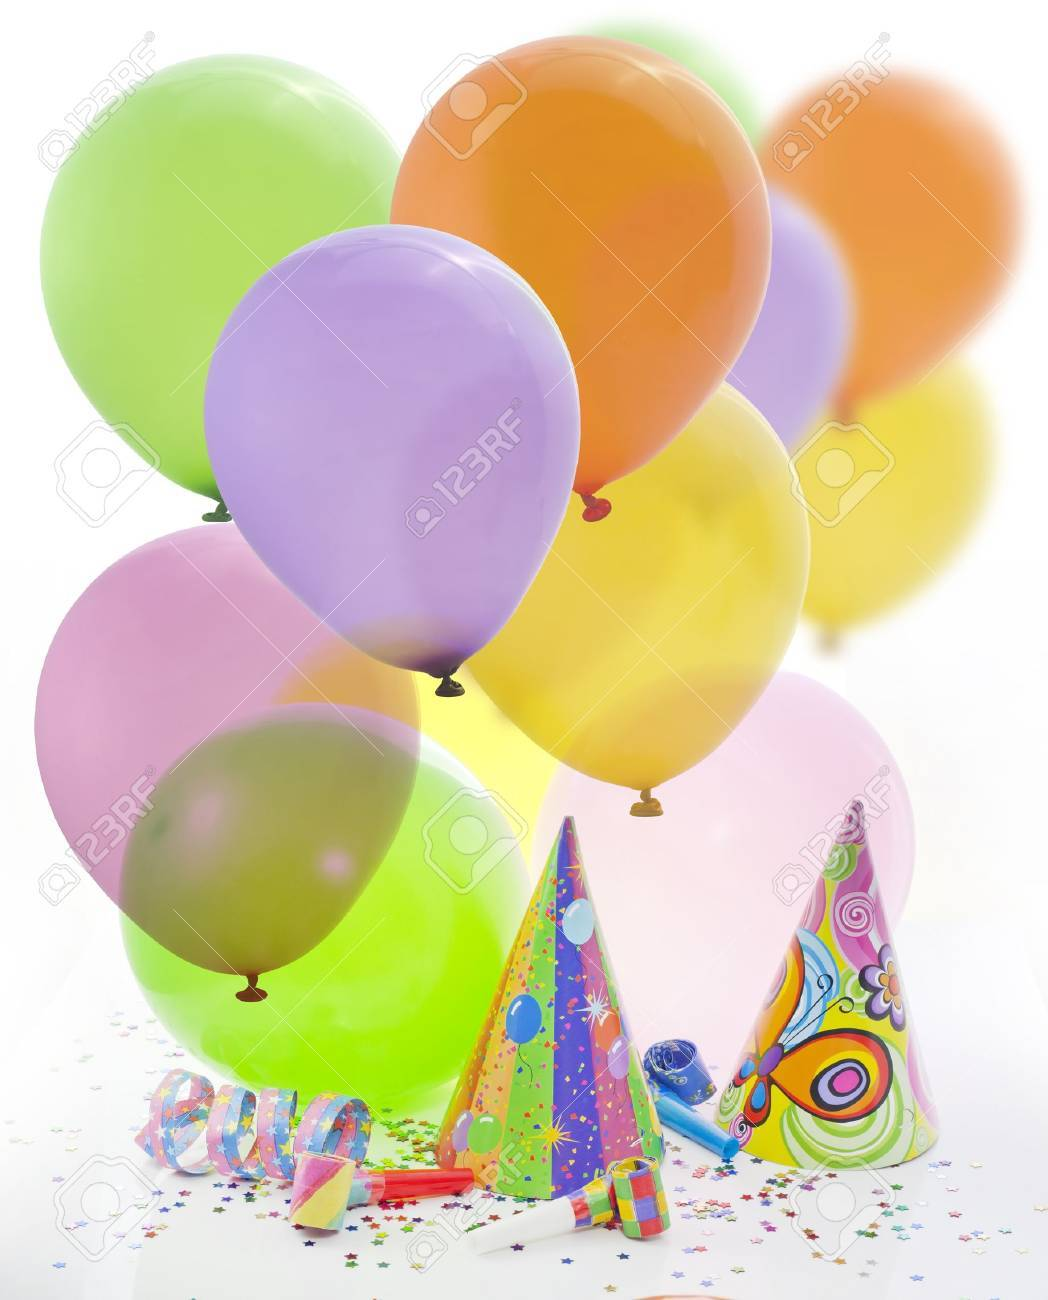 colorful party birthday new year background with balloons stock photo 14586781